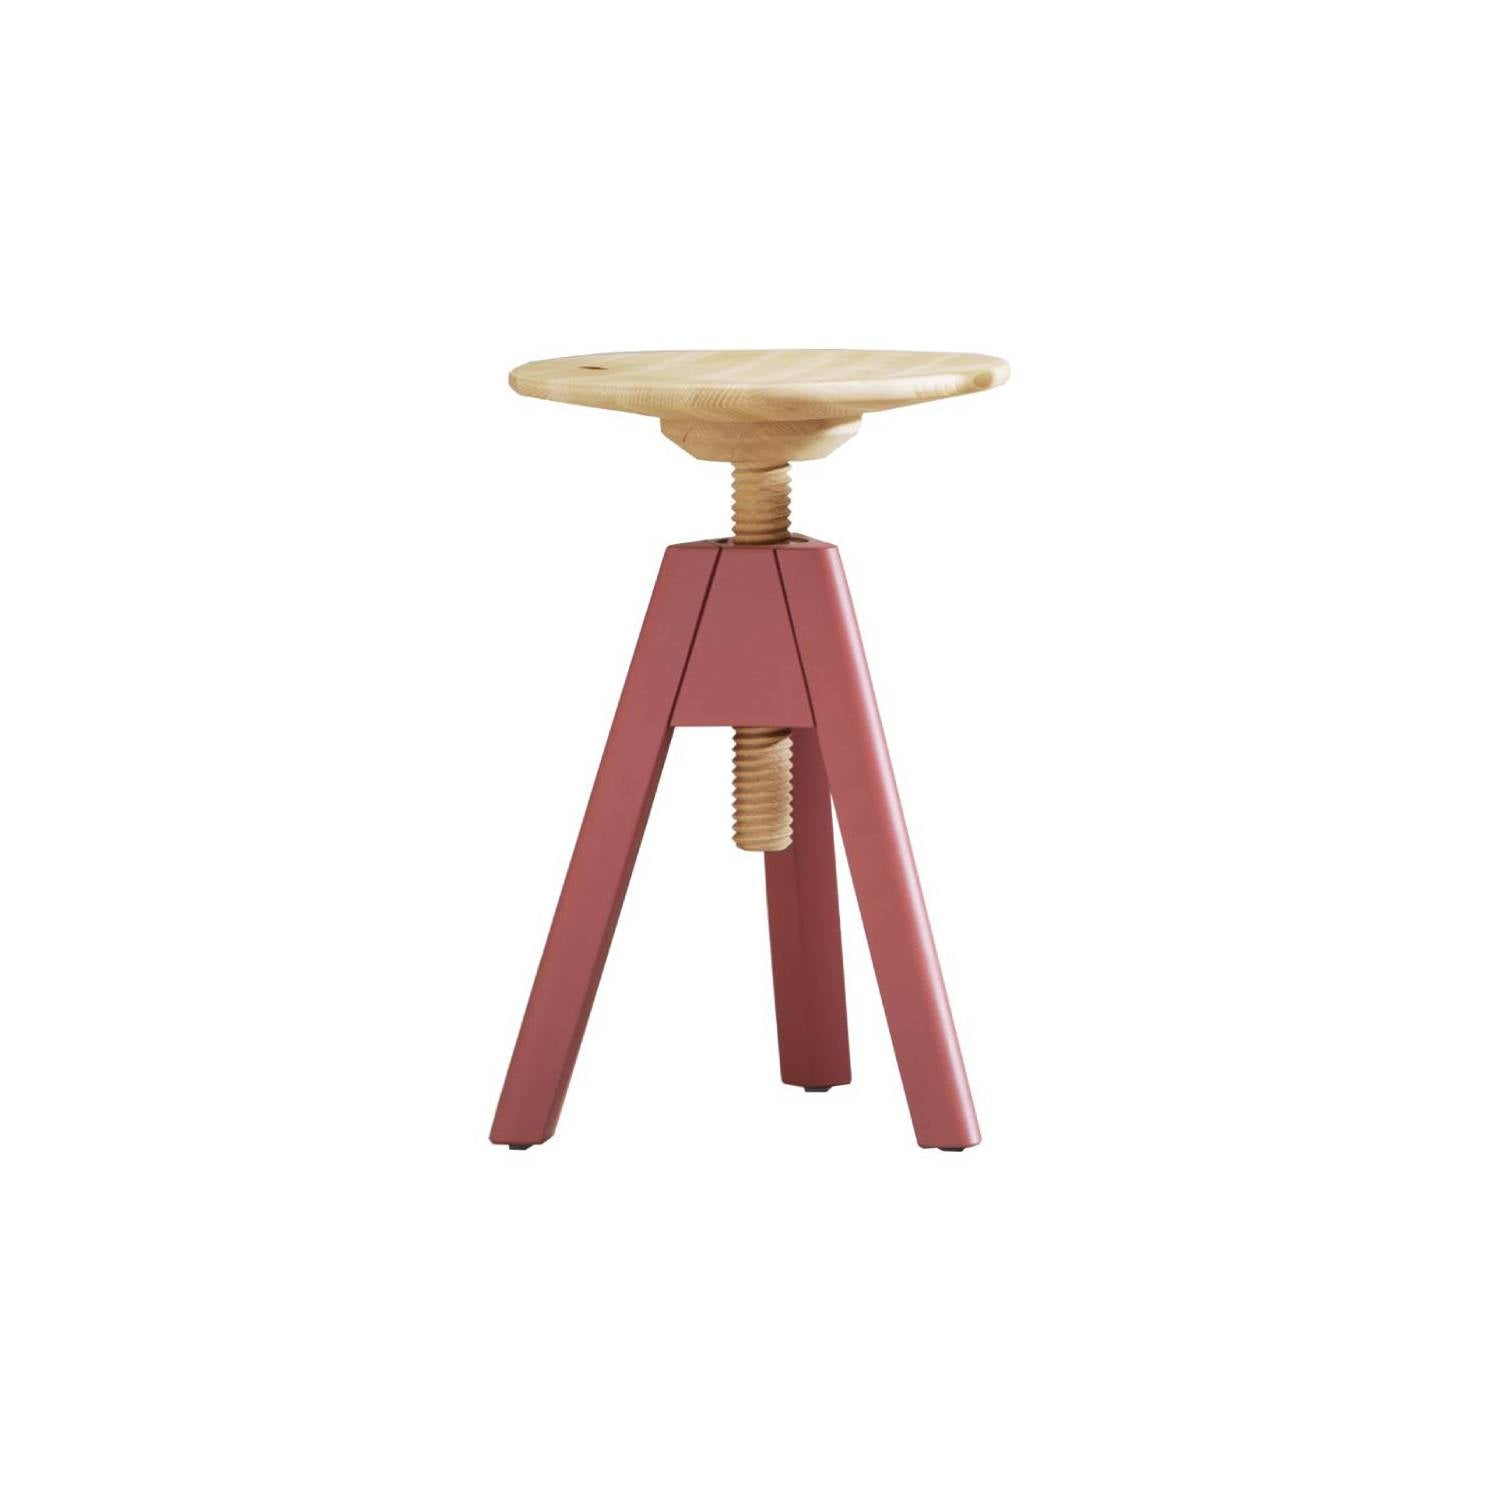 Vitos Stool: Low + Marsala Red